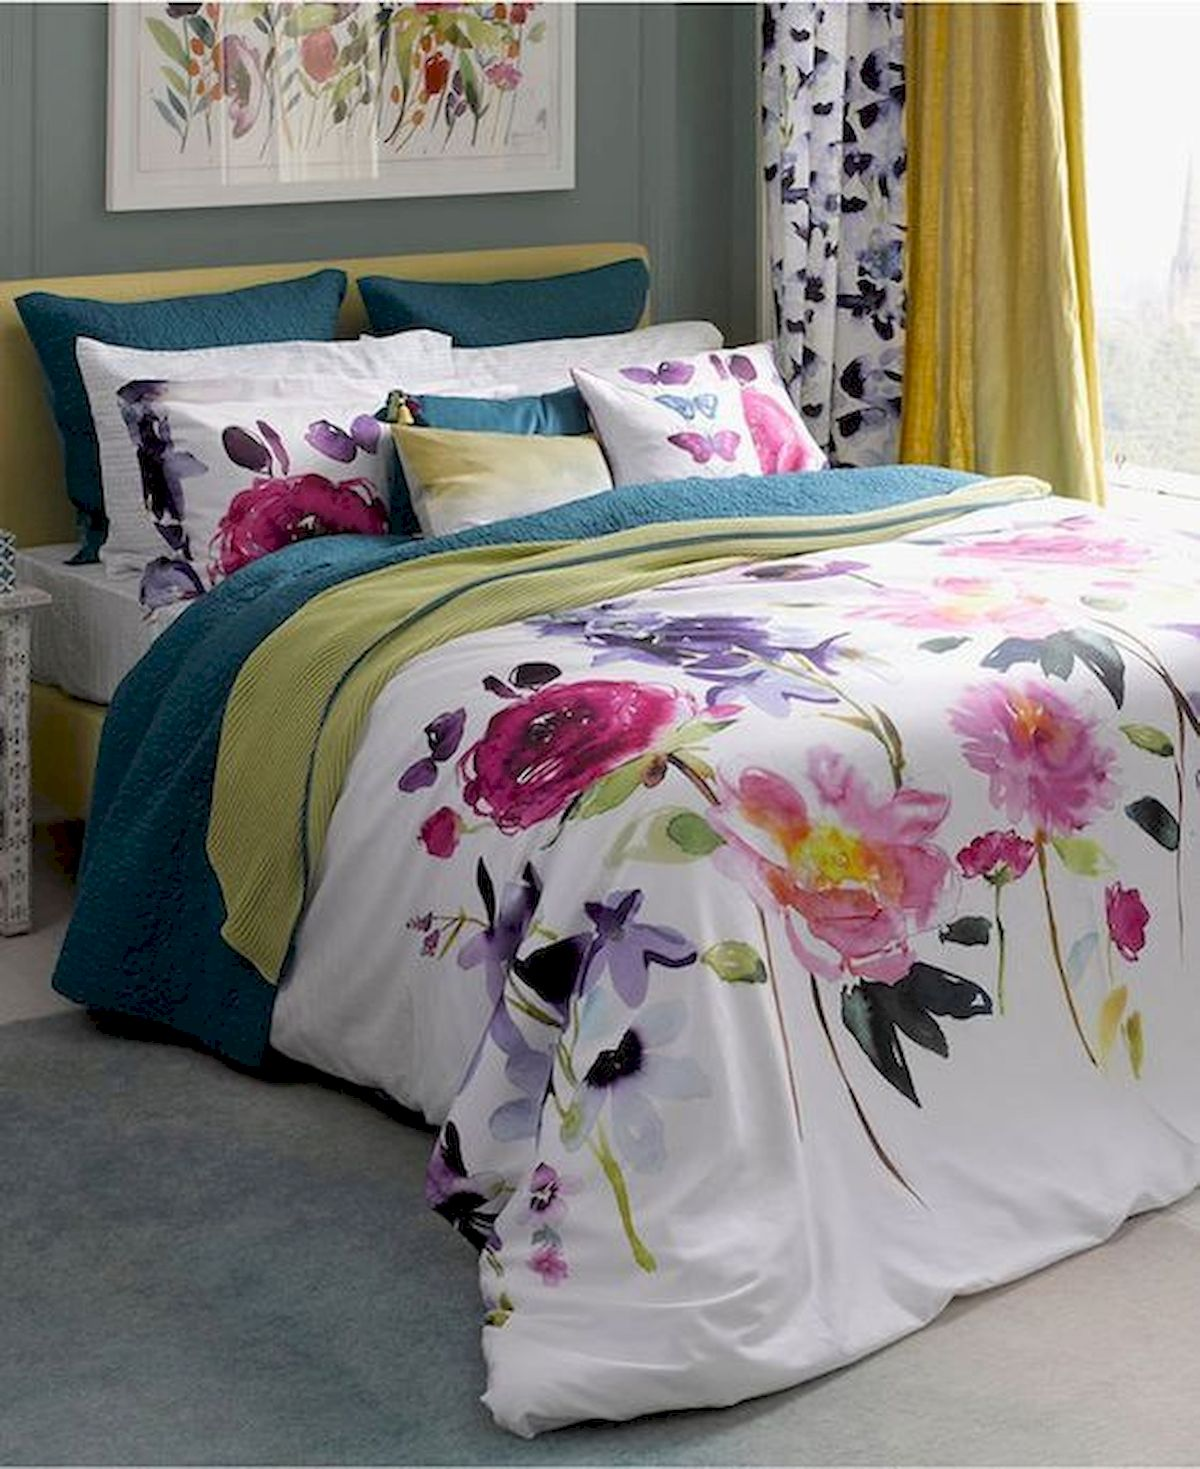 70 Awesome Colorful Bedroom Design Ideas and Remodel (22)